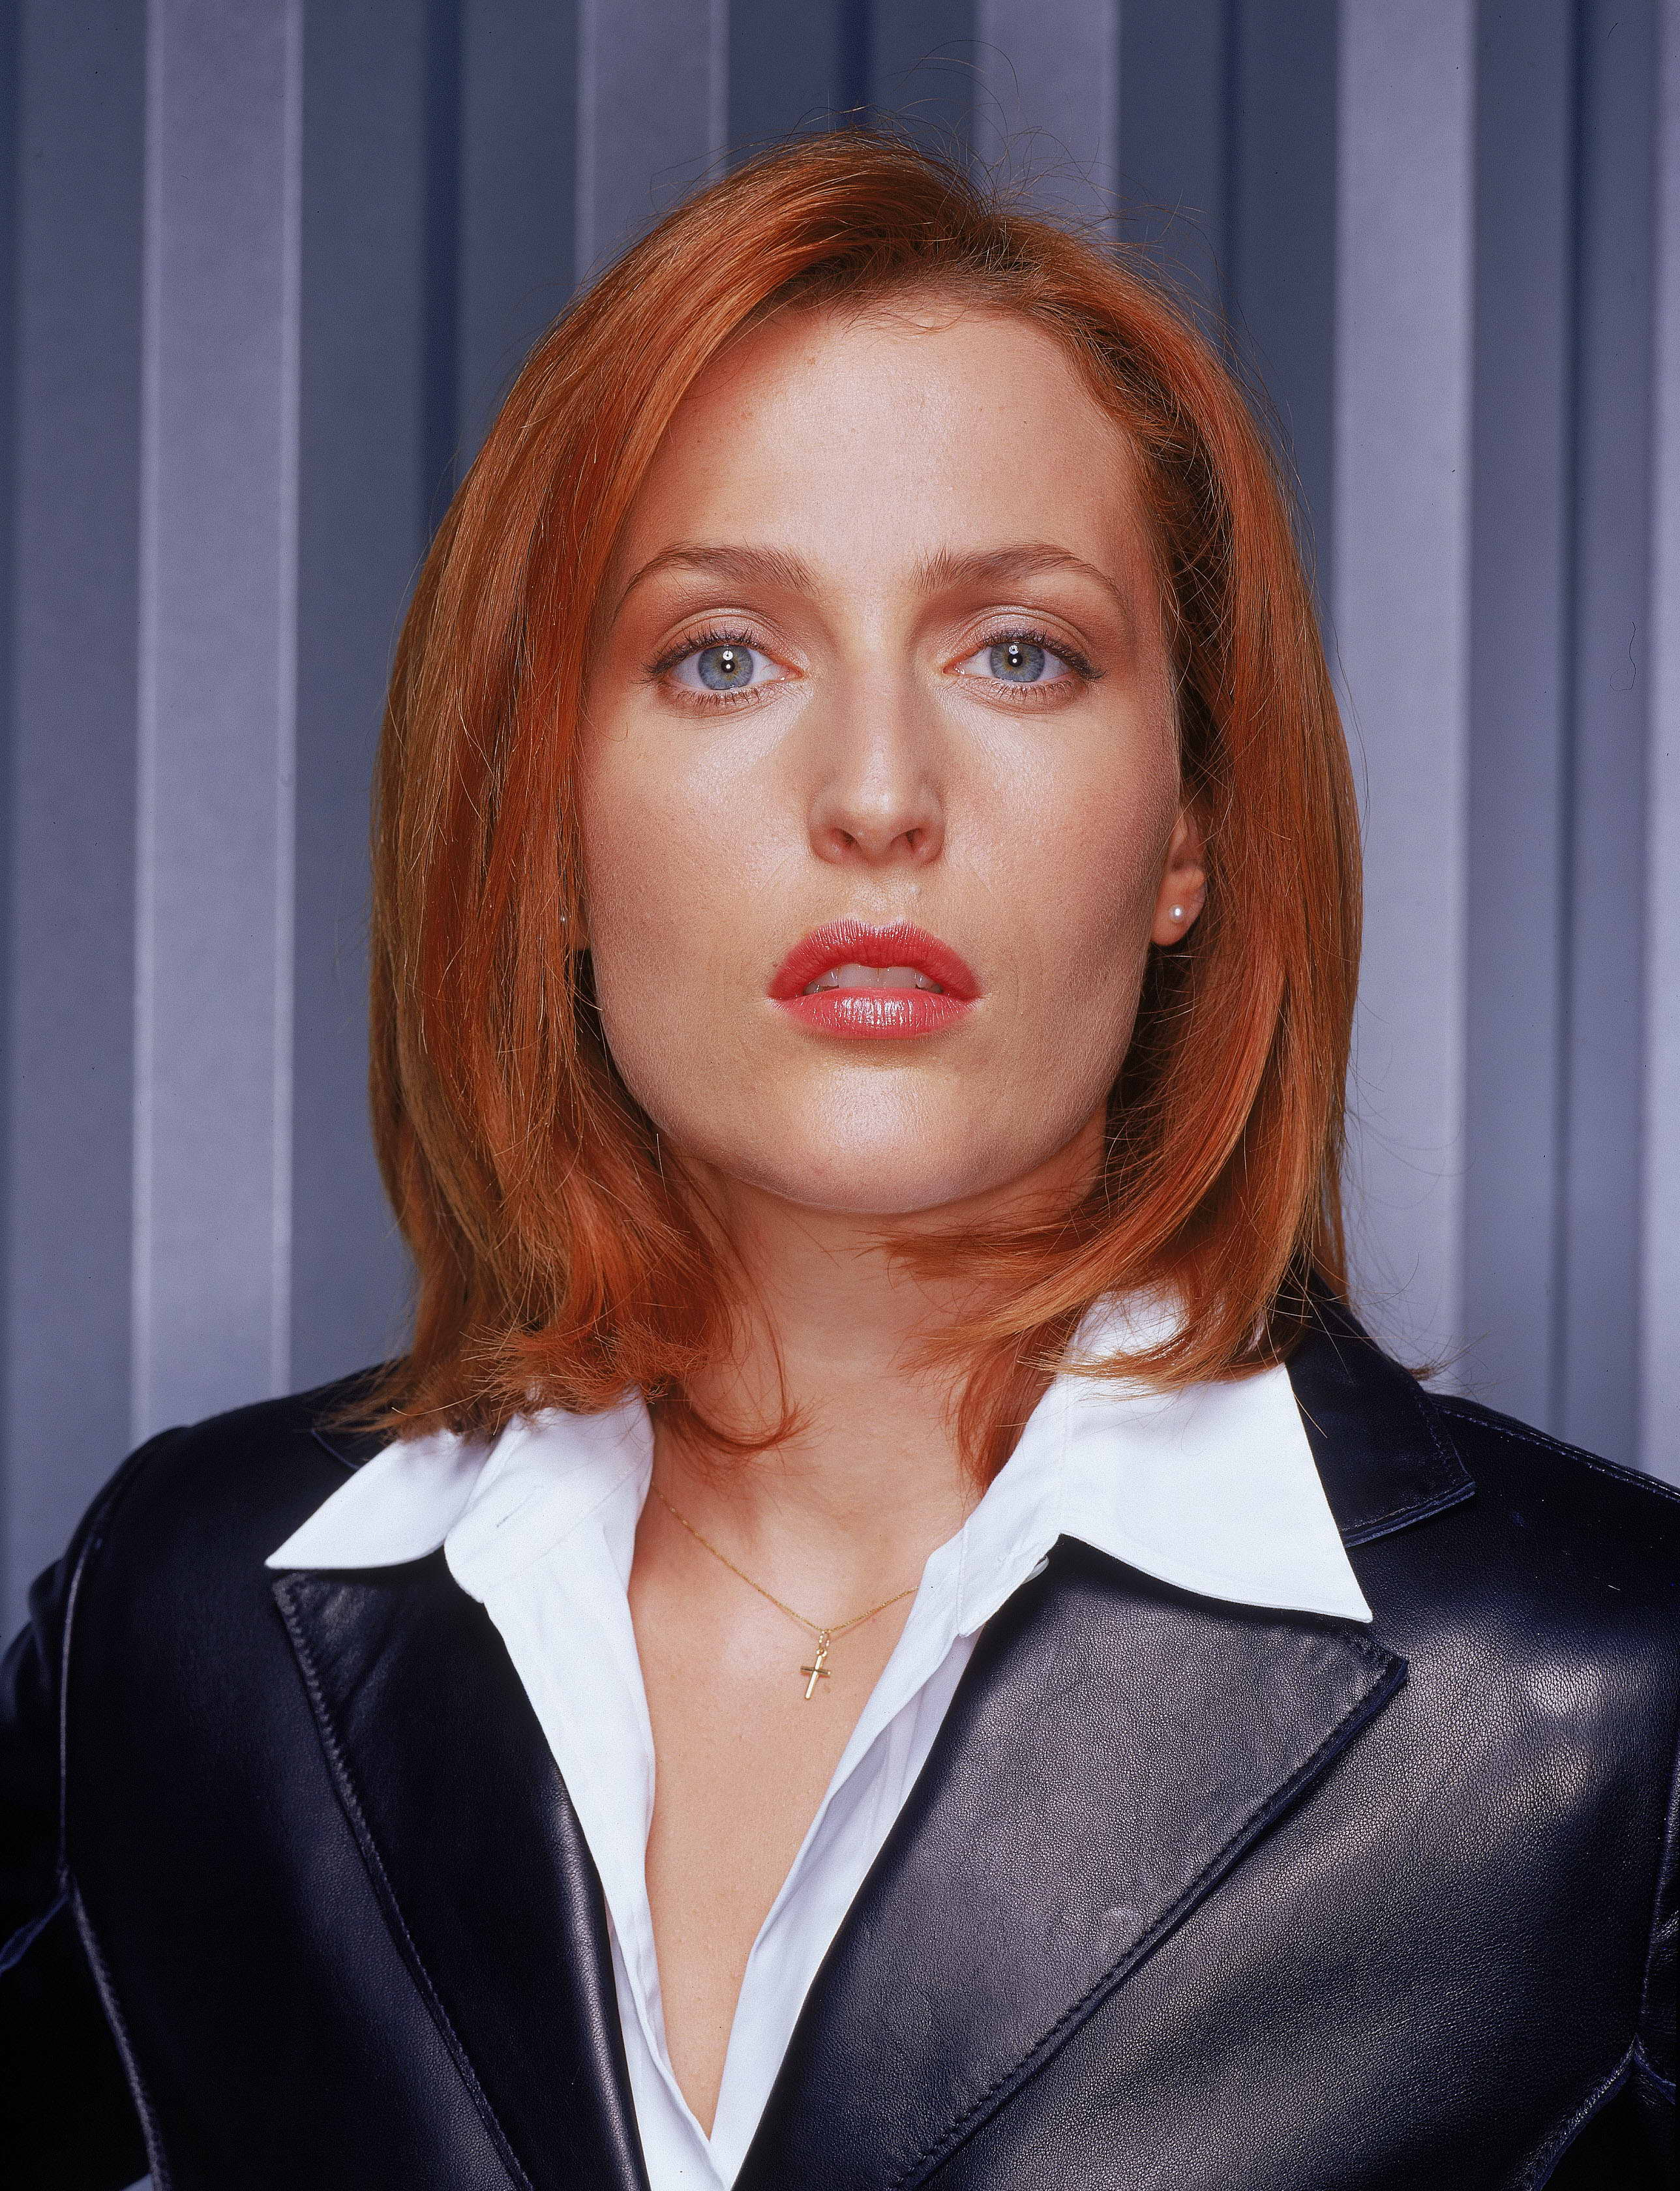 Image Result For Gillian Anderson